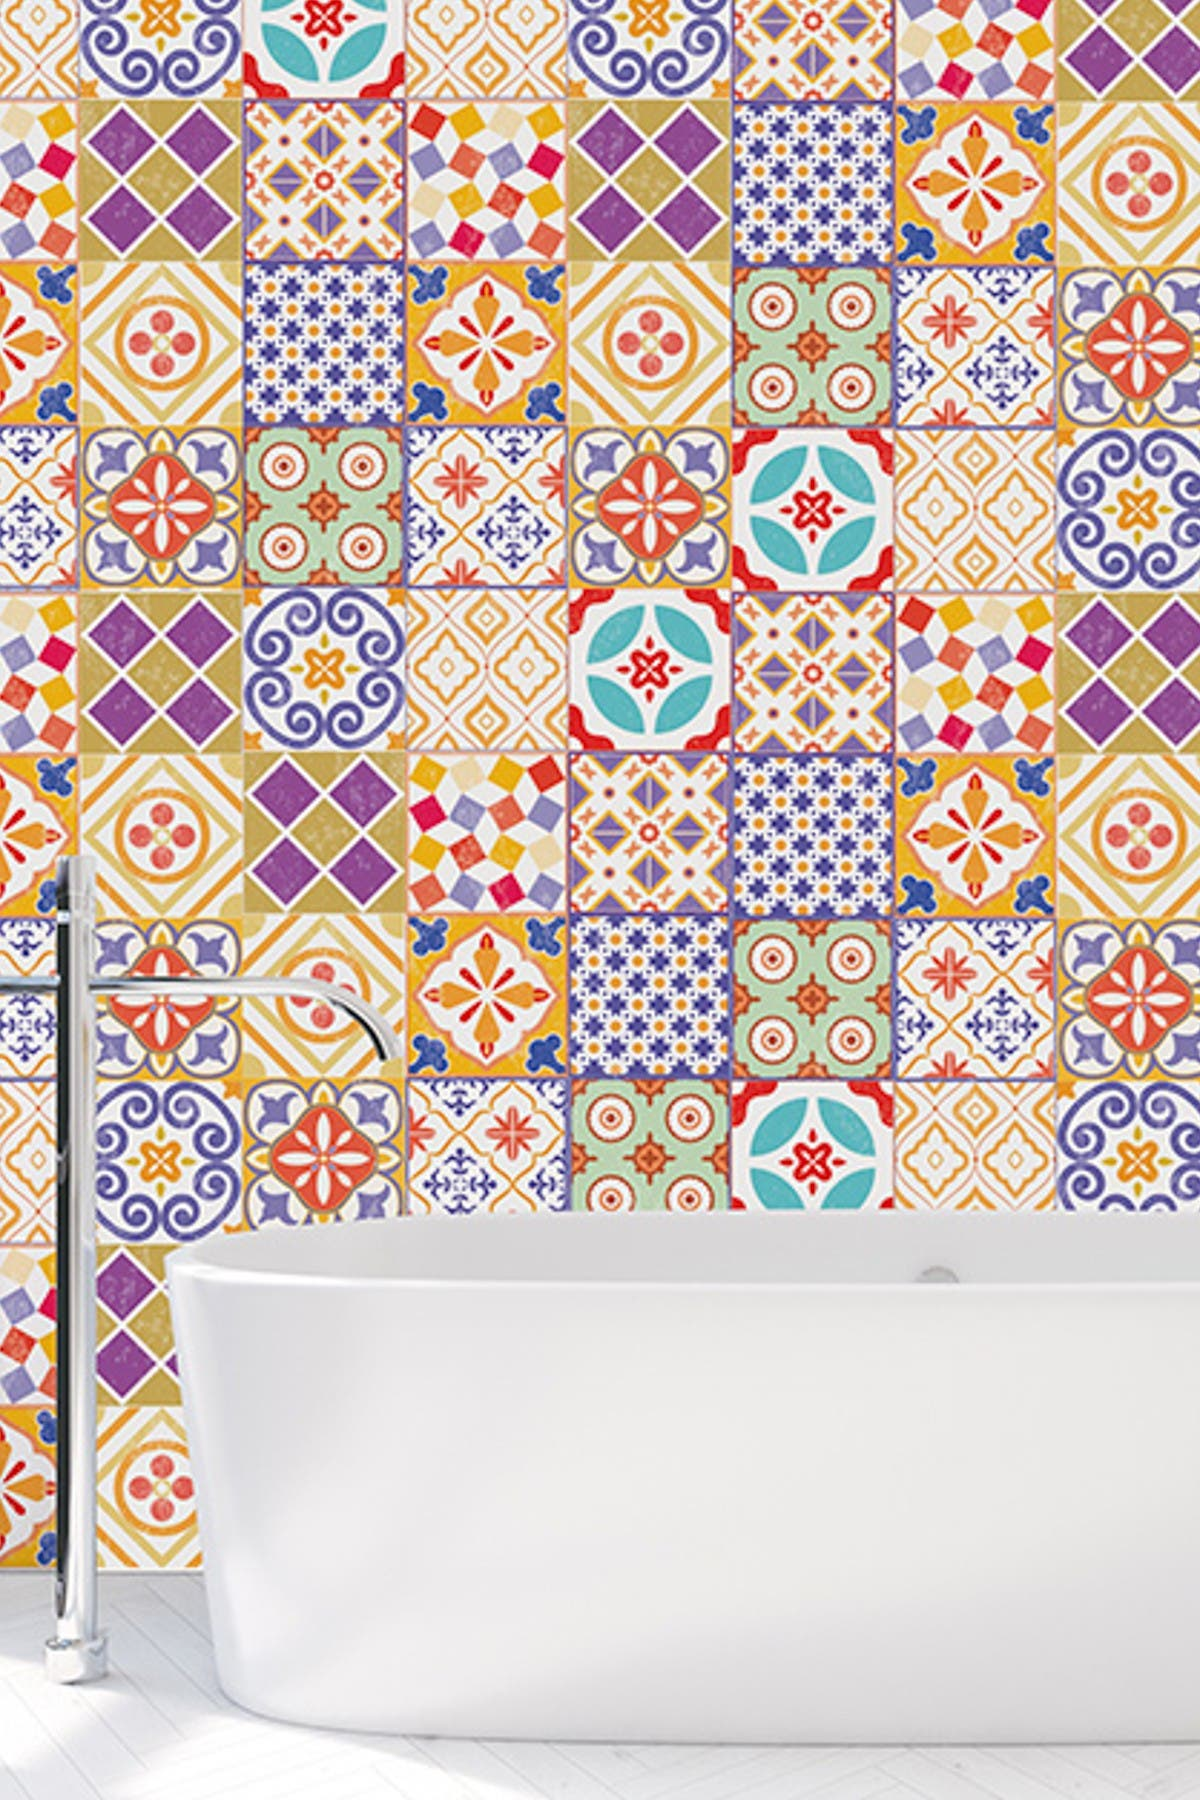 Image of WalPlus Colourful Moroccan Tiles Wall Stickers